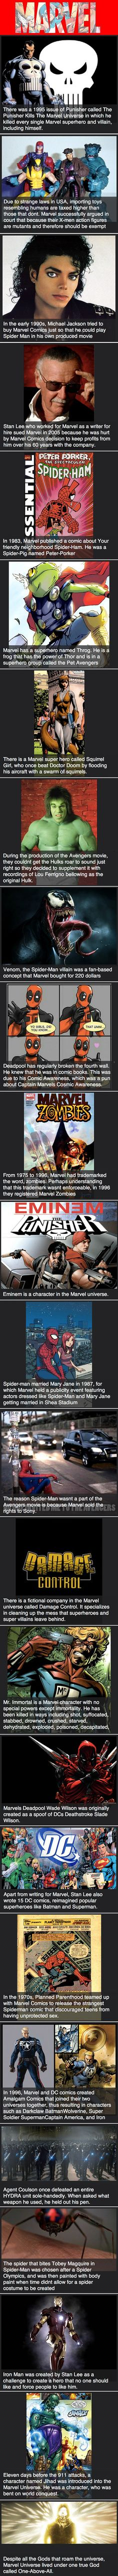 Love Marvel? Here are some interesting and weird facts you may not have known about.